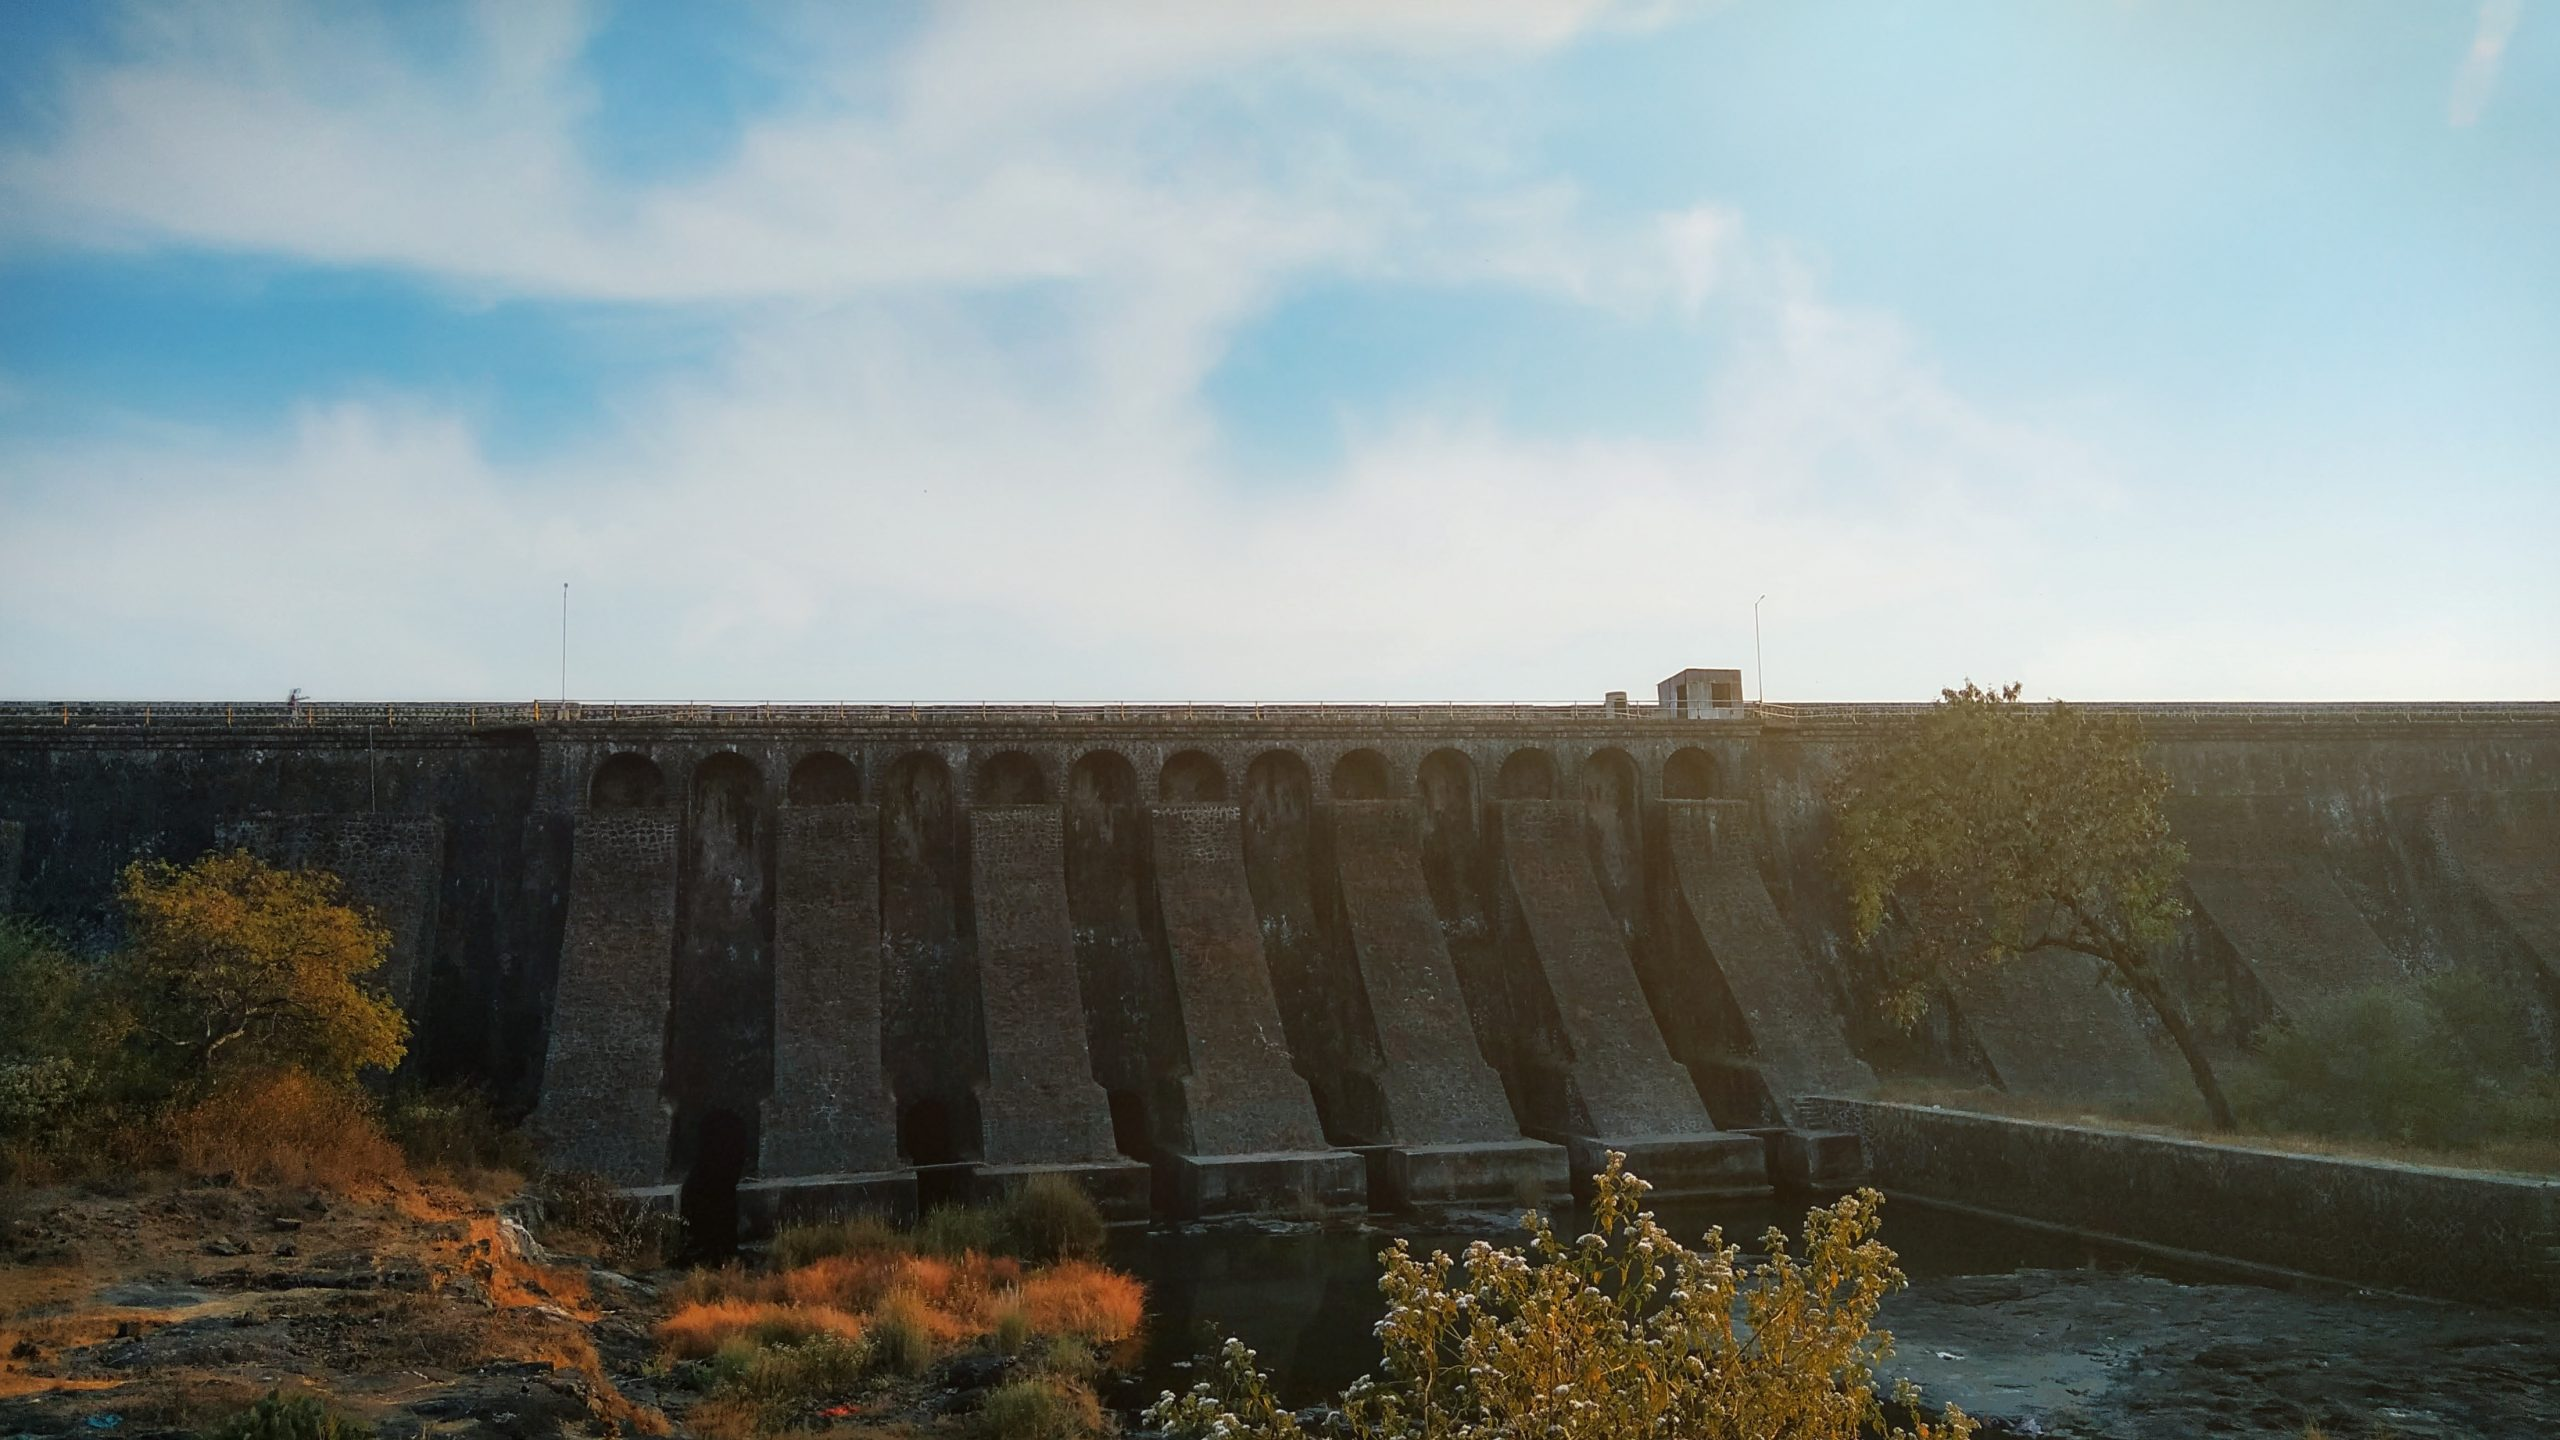 Water dam Shot on a Sunny Day